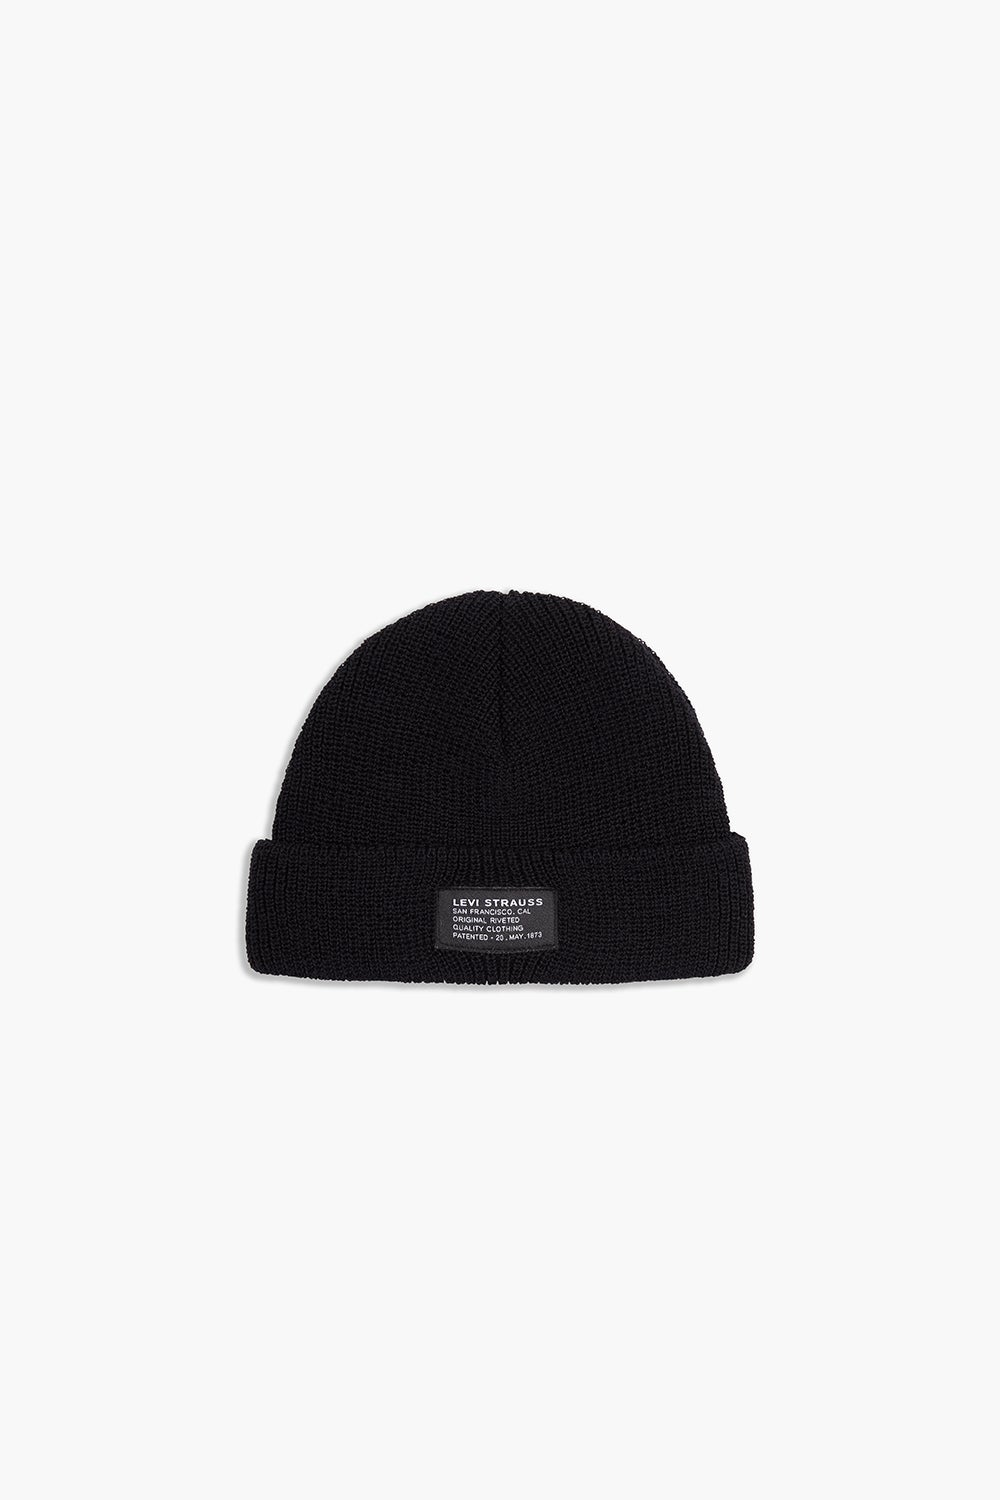 Levi's Knitted Cropped Beanie Black